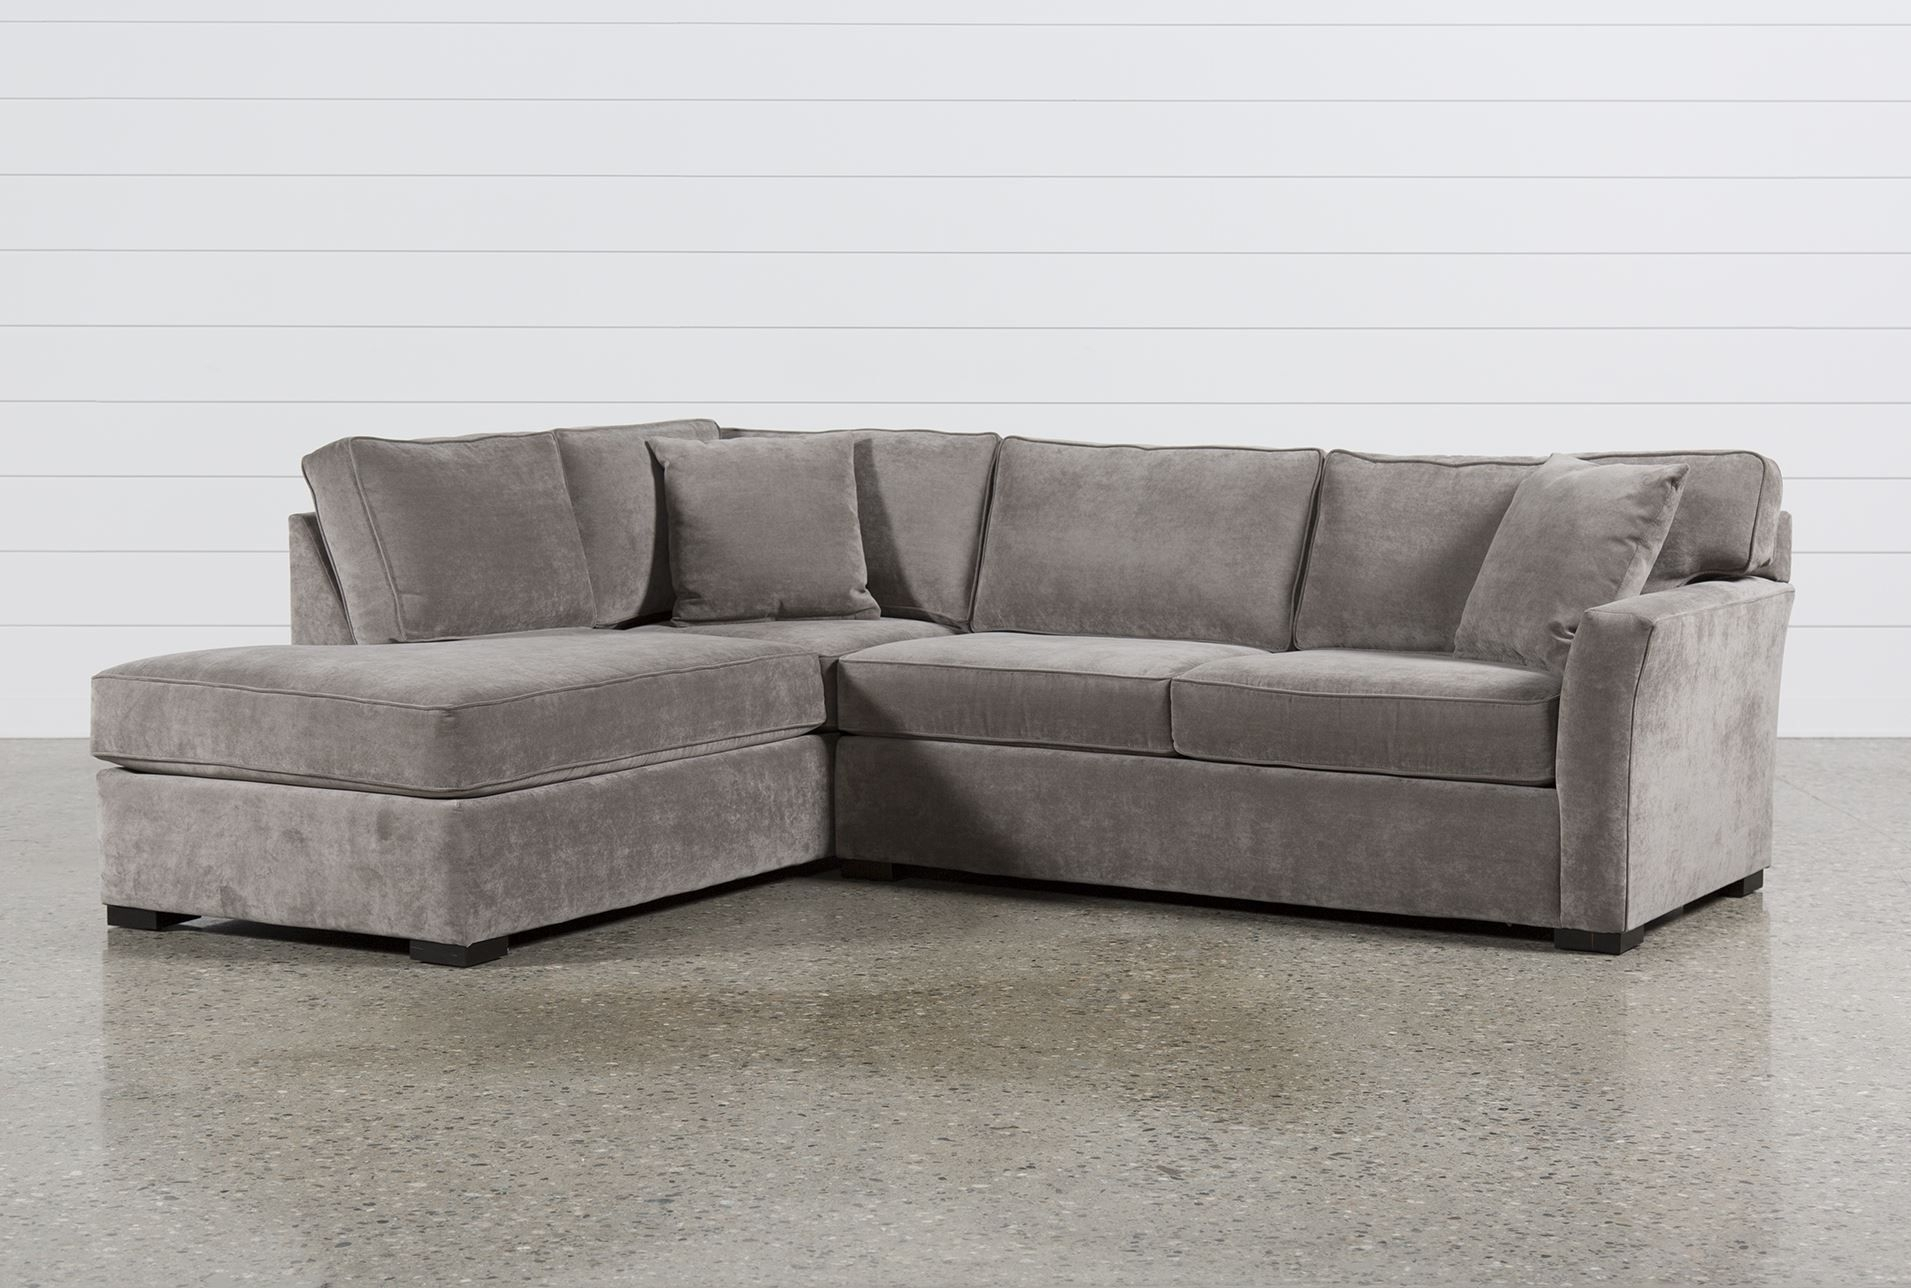 Aspen 2 Piece Sectional W/laf Chaise, Grey, Sofas | Aspen And Apartments In Avery 2 Piece Sectionals With Raf Armless Chaise (View 5 of 25)